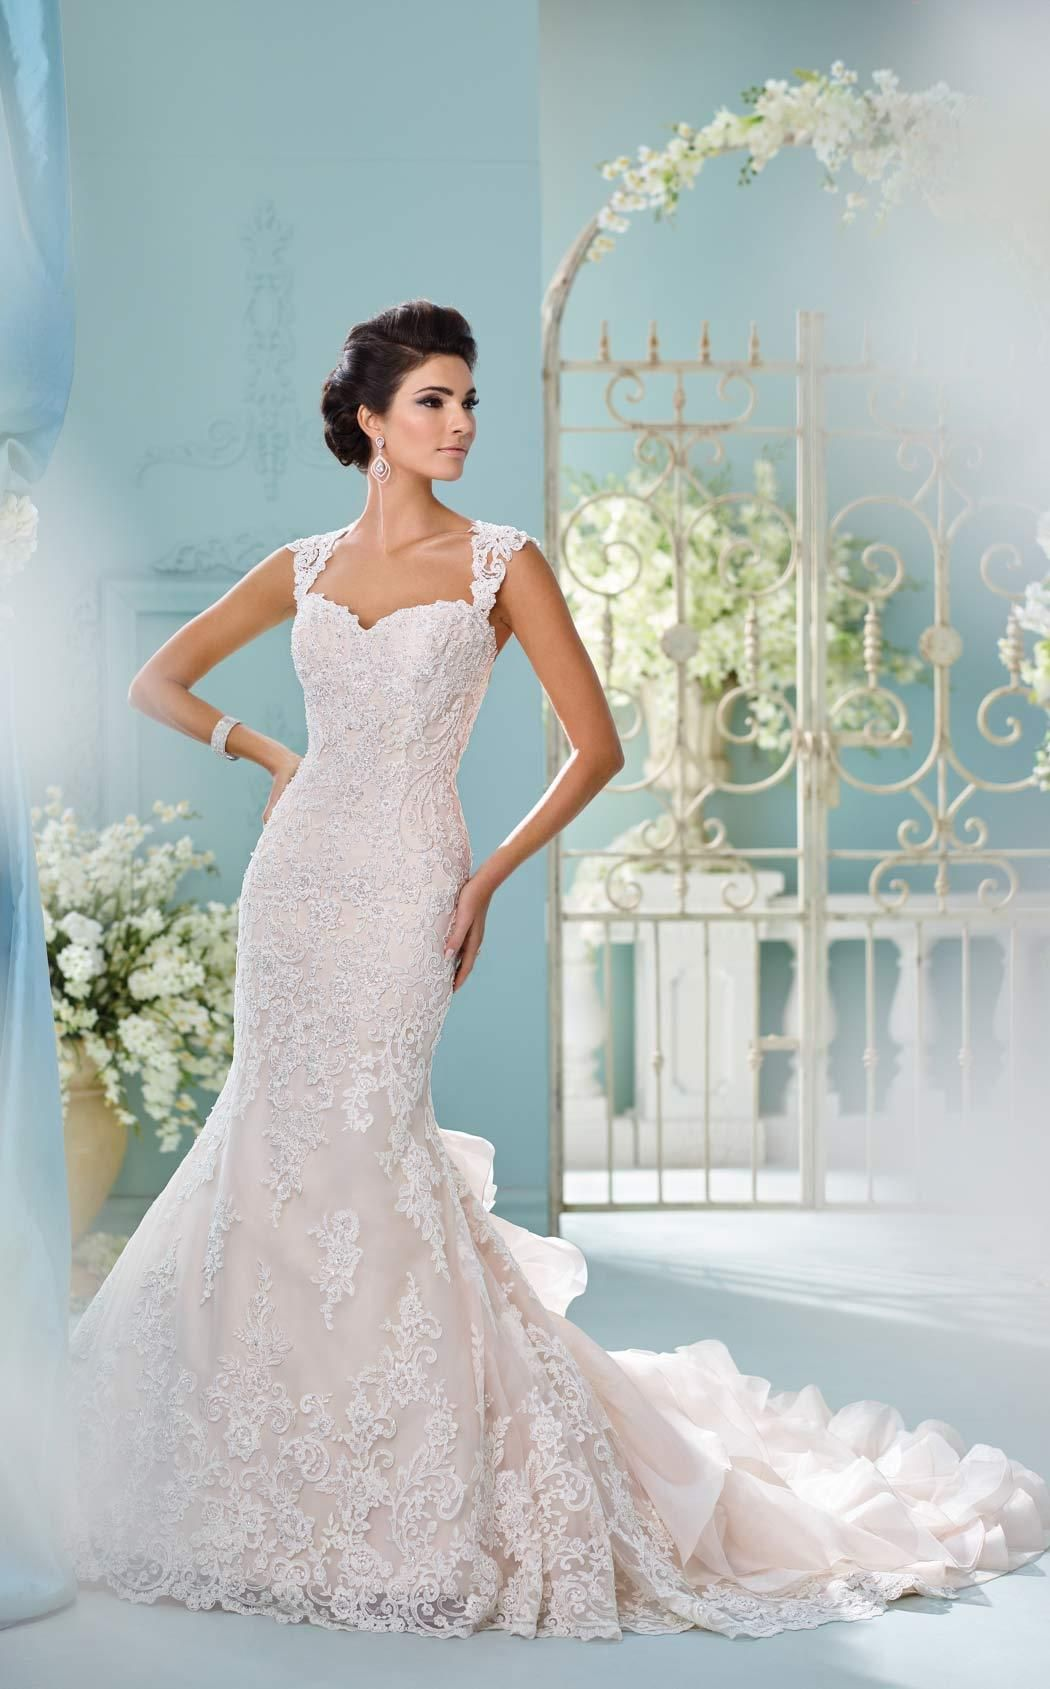 Fine Rental Bridal Gowns Toronto Ensign - All Wedding Dresses ...